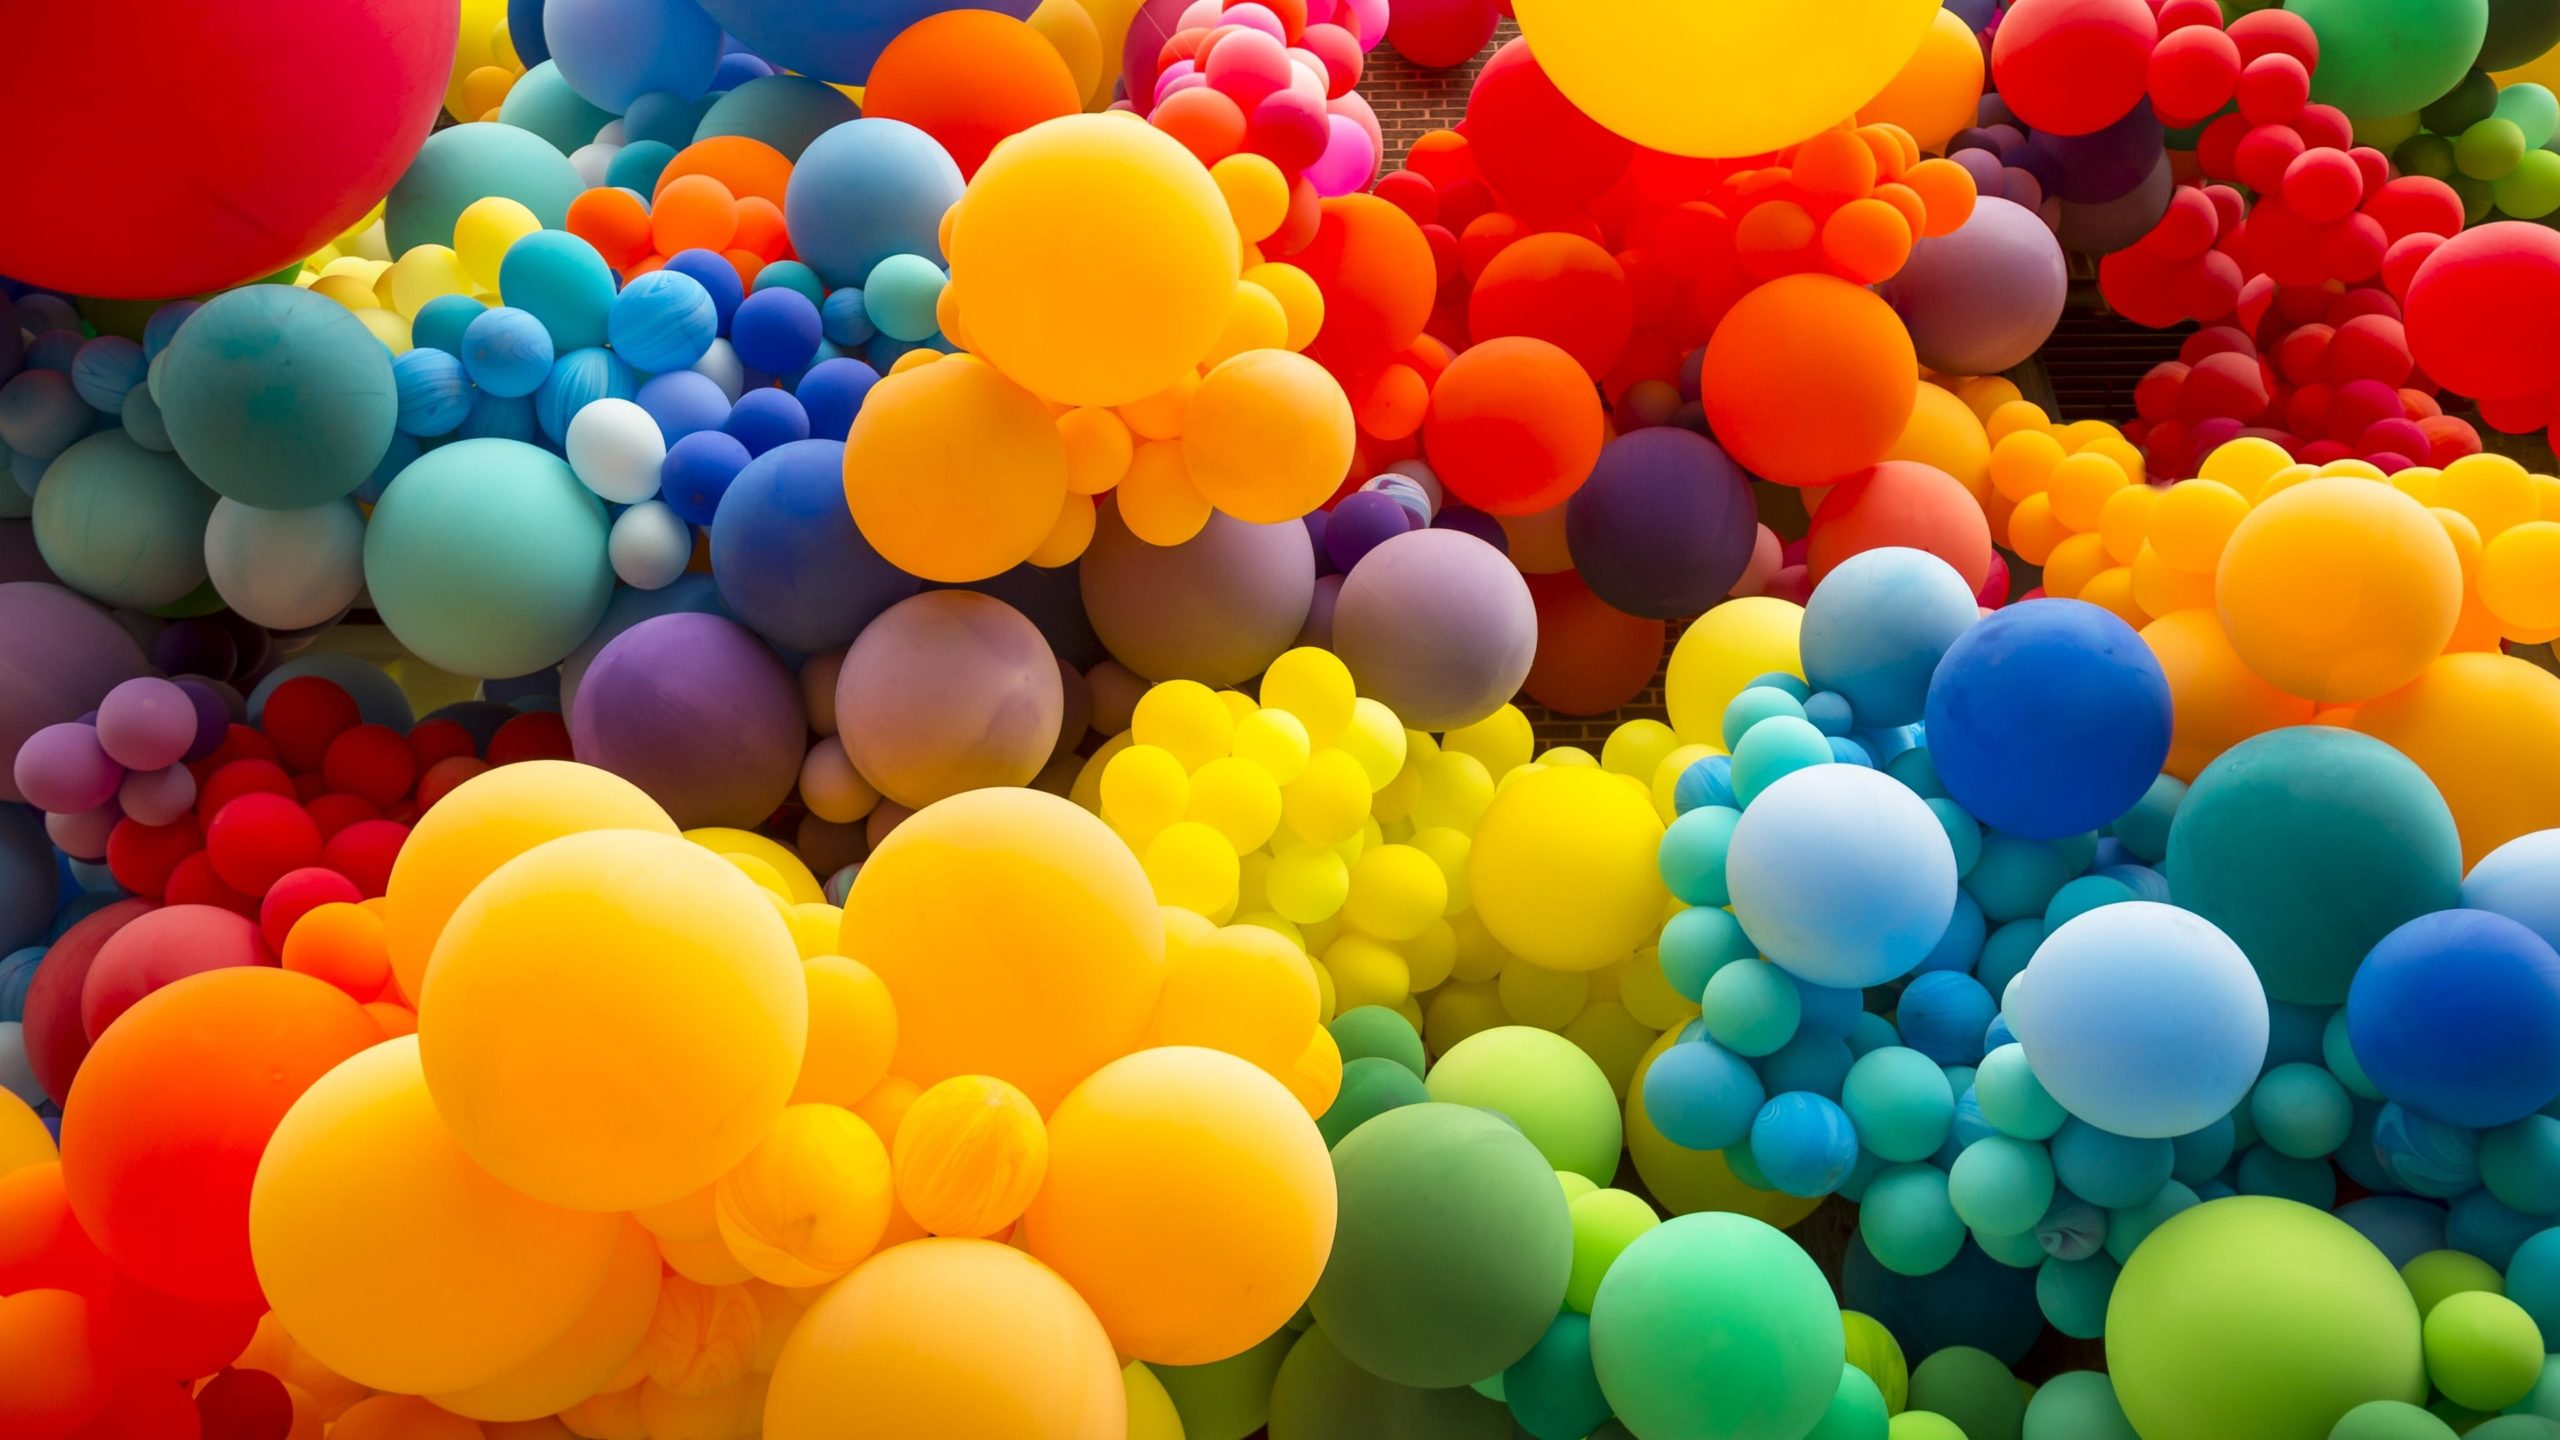 balloon images free download